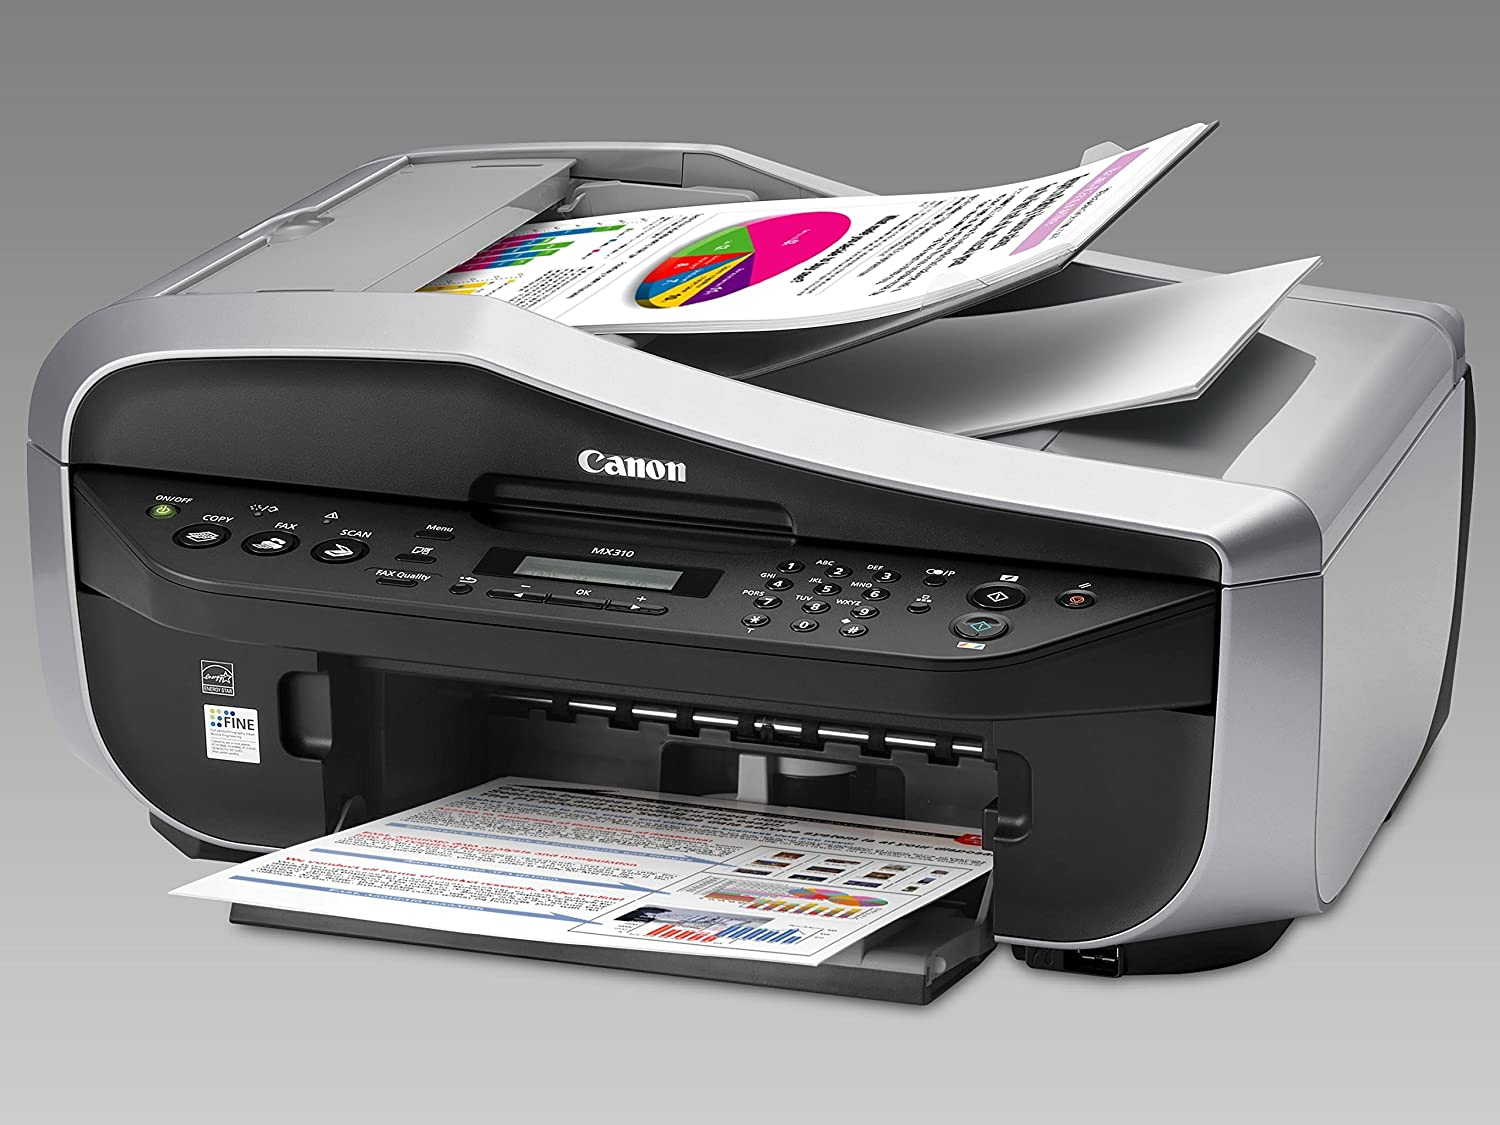 amazon com canon pixma mx310 office all in one inkjet printer rh amazon com Canon MX310 Driver canon mx310 scanning guide on screen manual